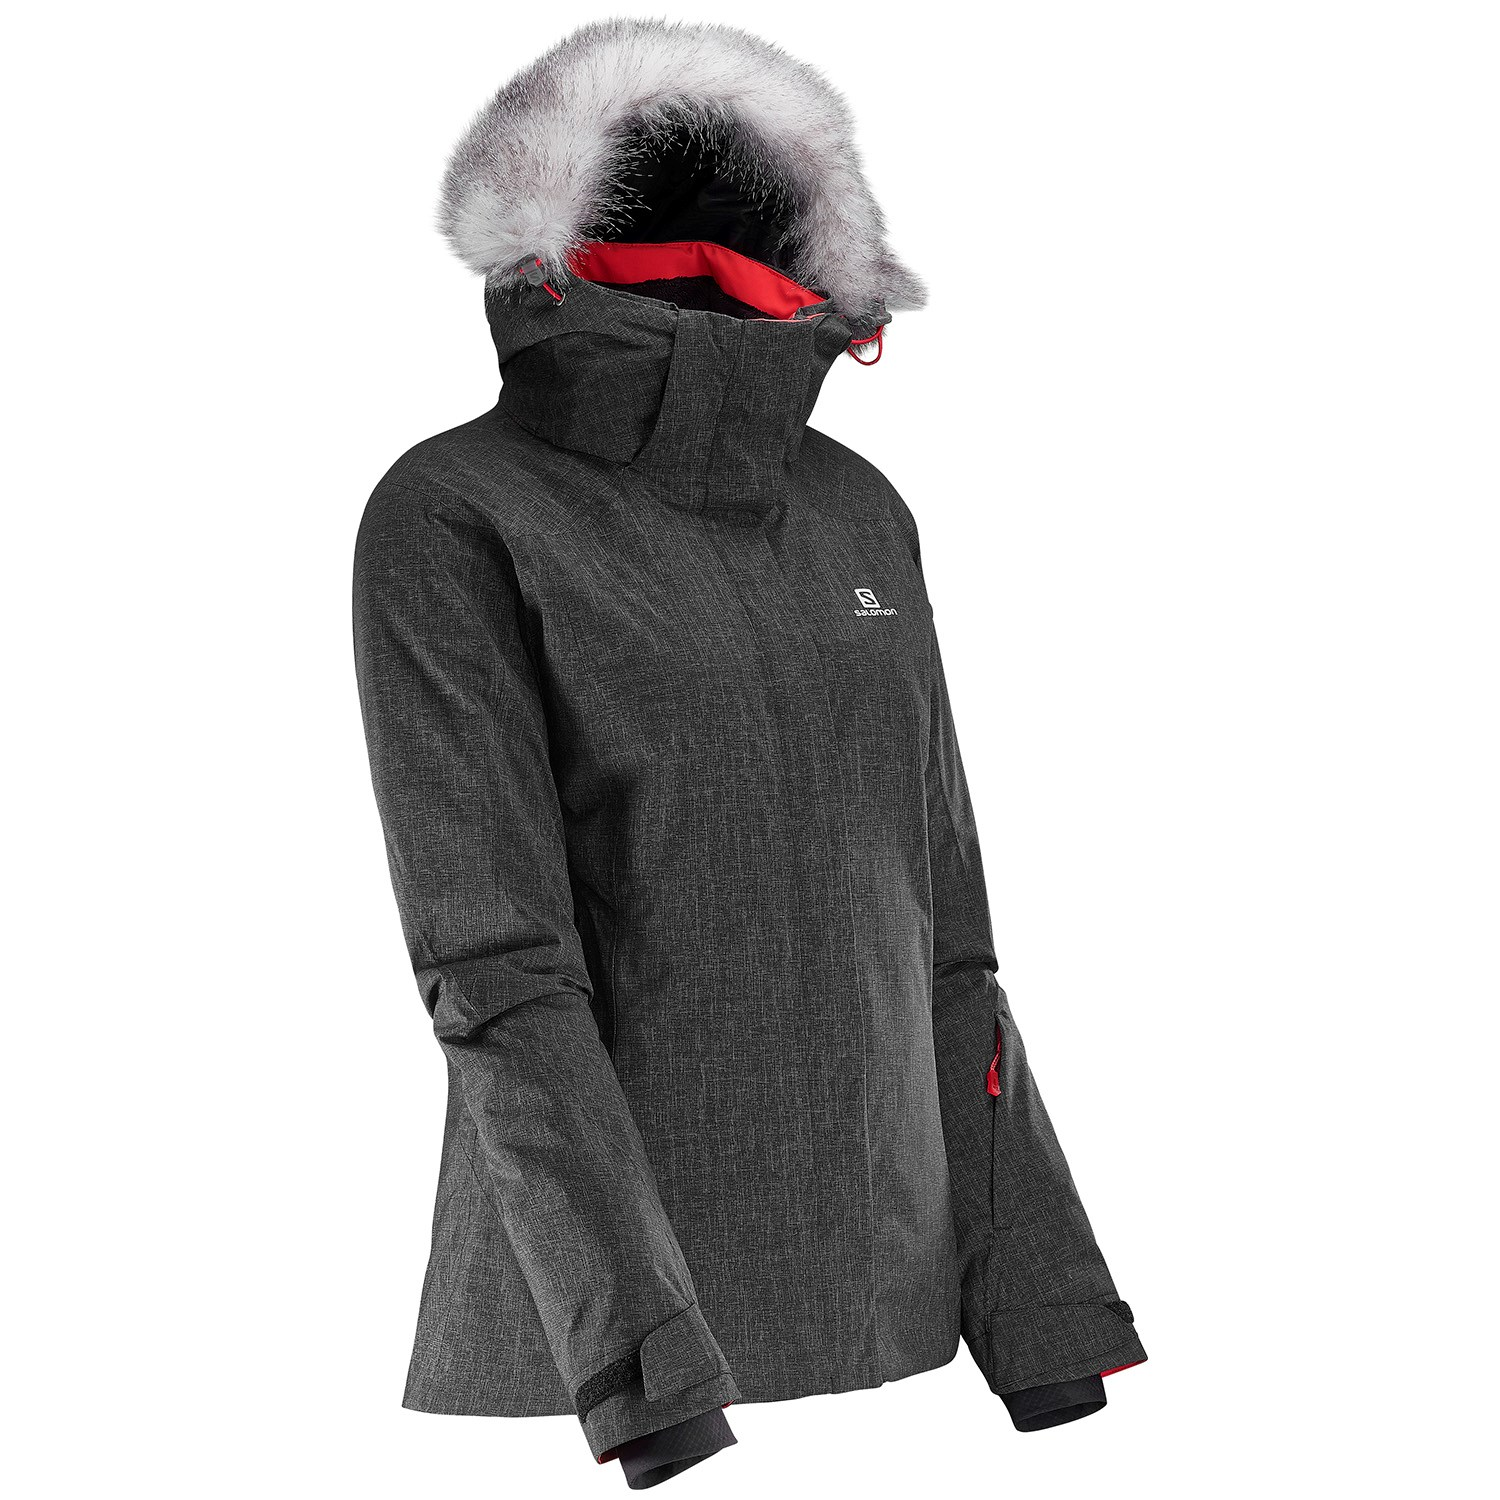 Salomon Brilliant + Jacket Women's